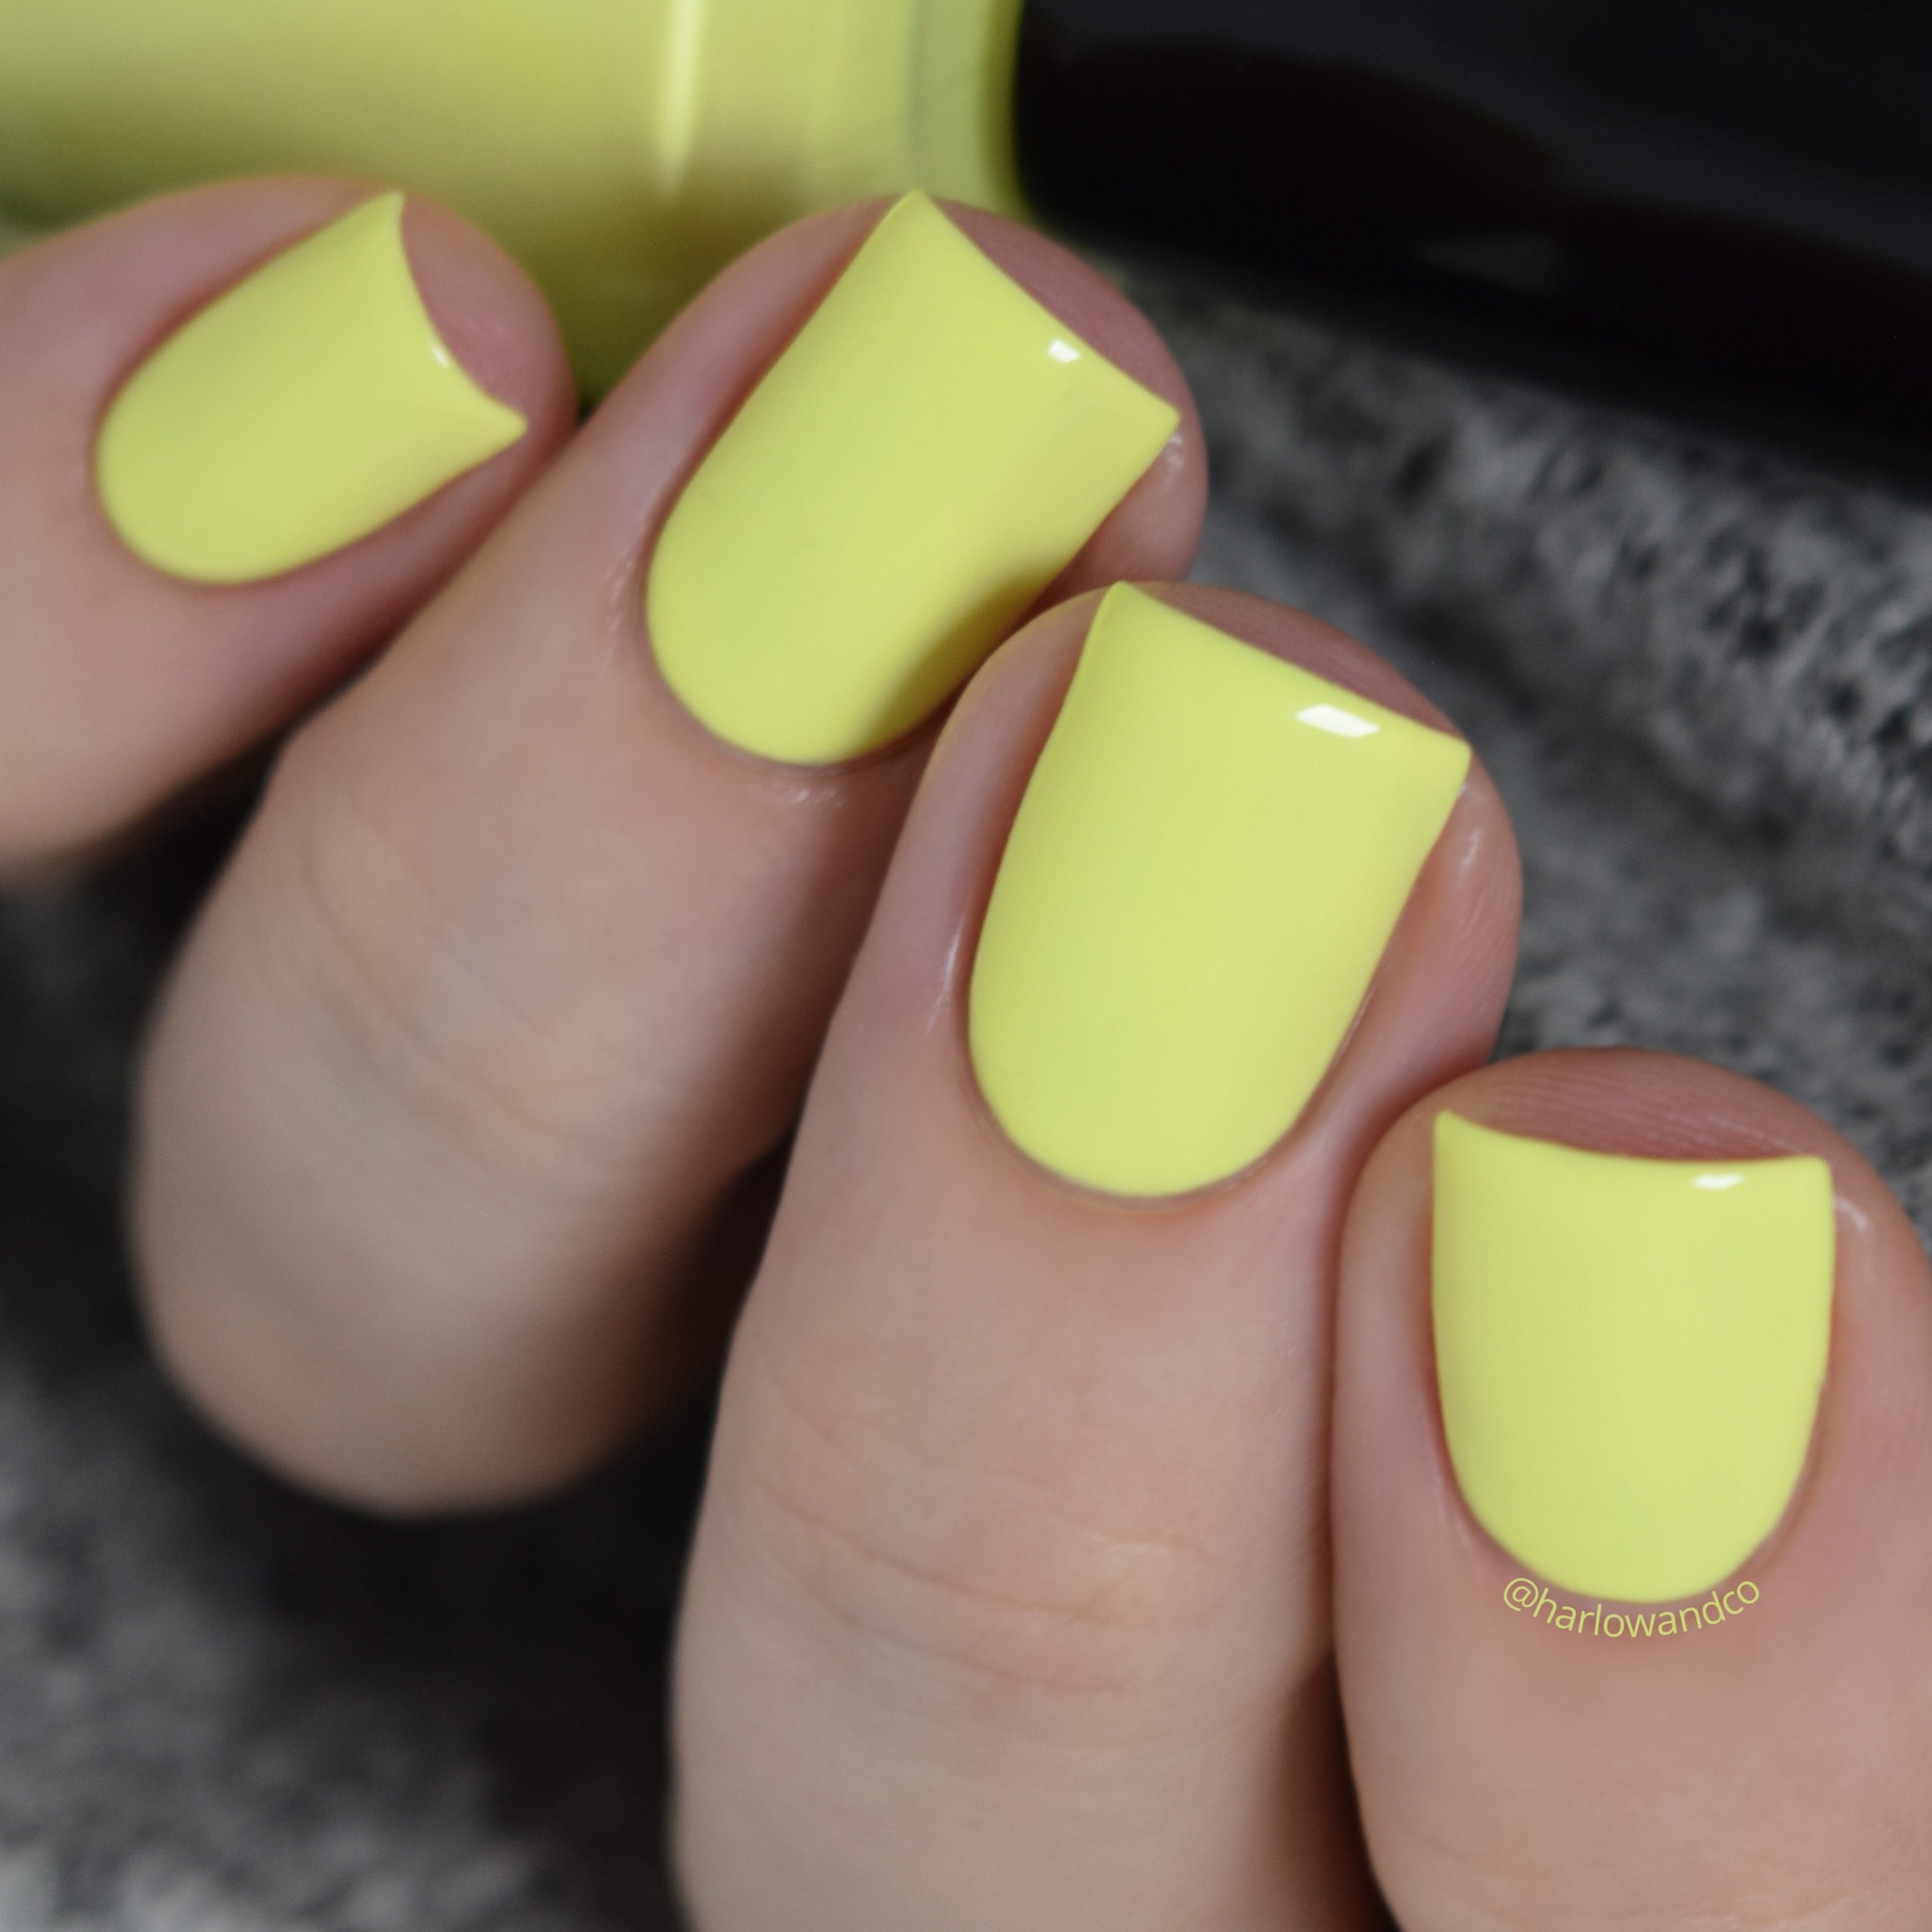 KBShimmer Sand By Me neon lemon yellow creme nail polish Seas the Day Collection